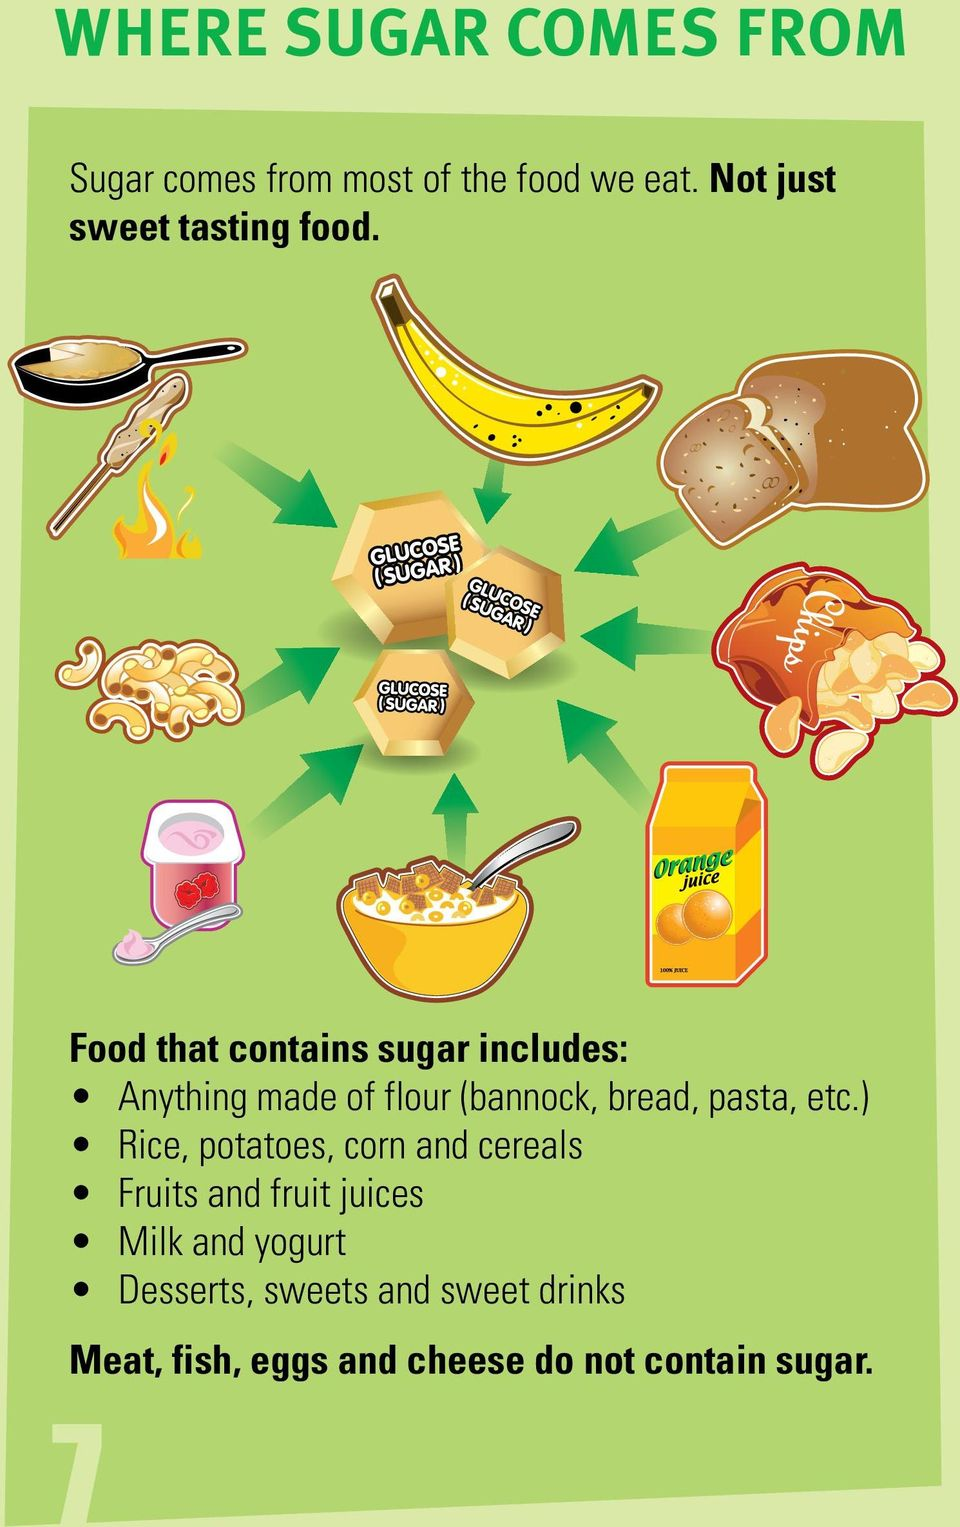 Food that contains sugar includes: Anything made of flour (bannock, bread, pasta,